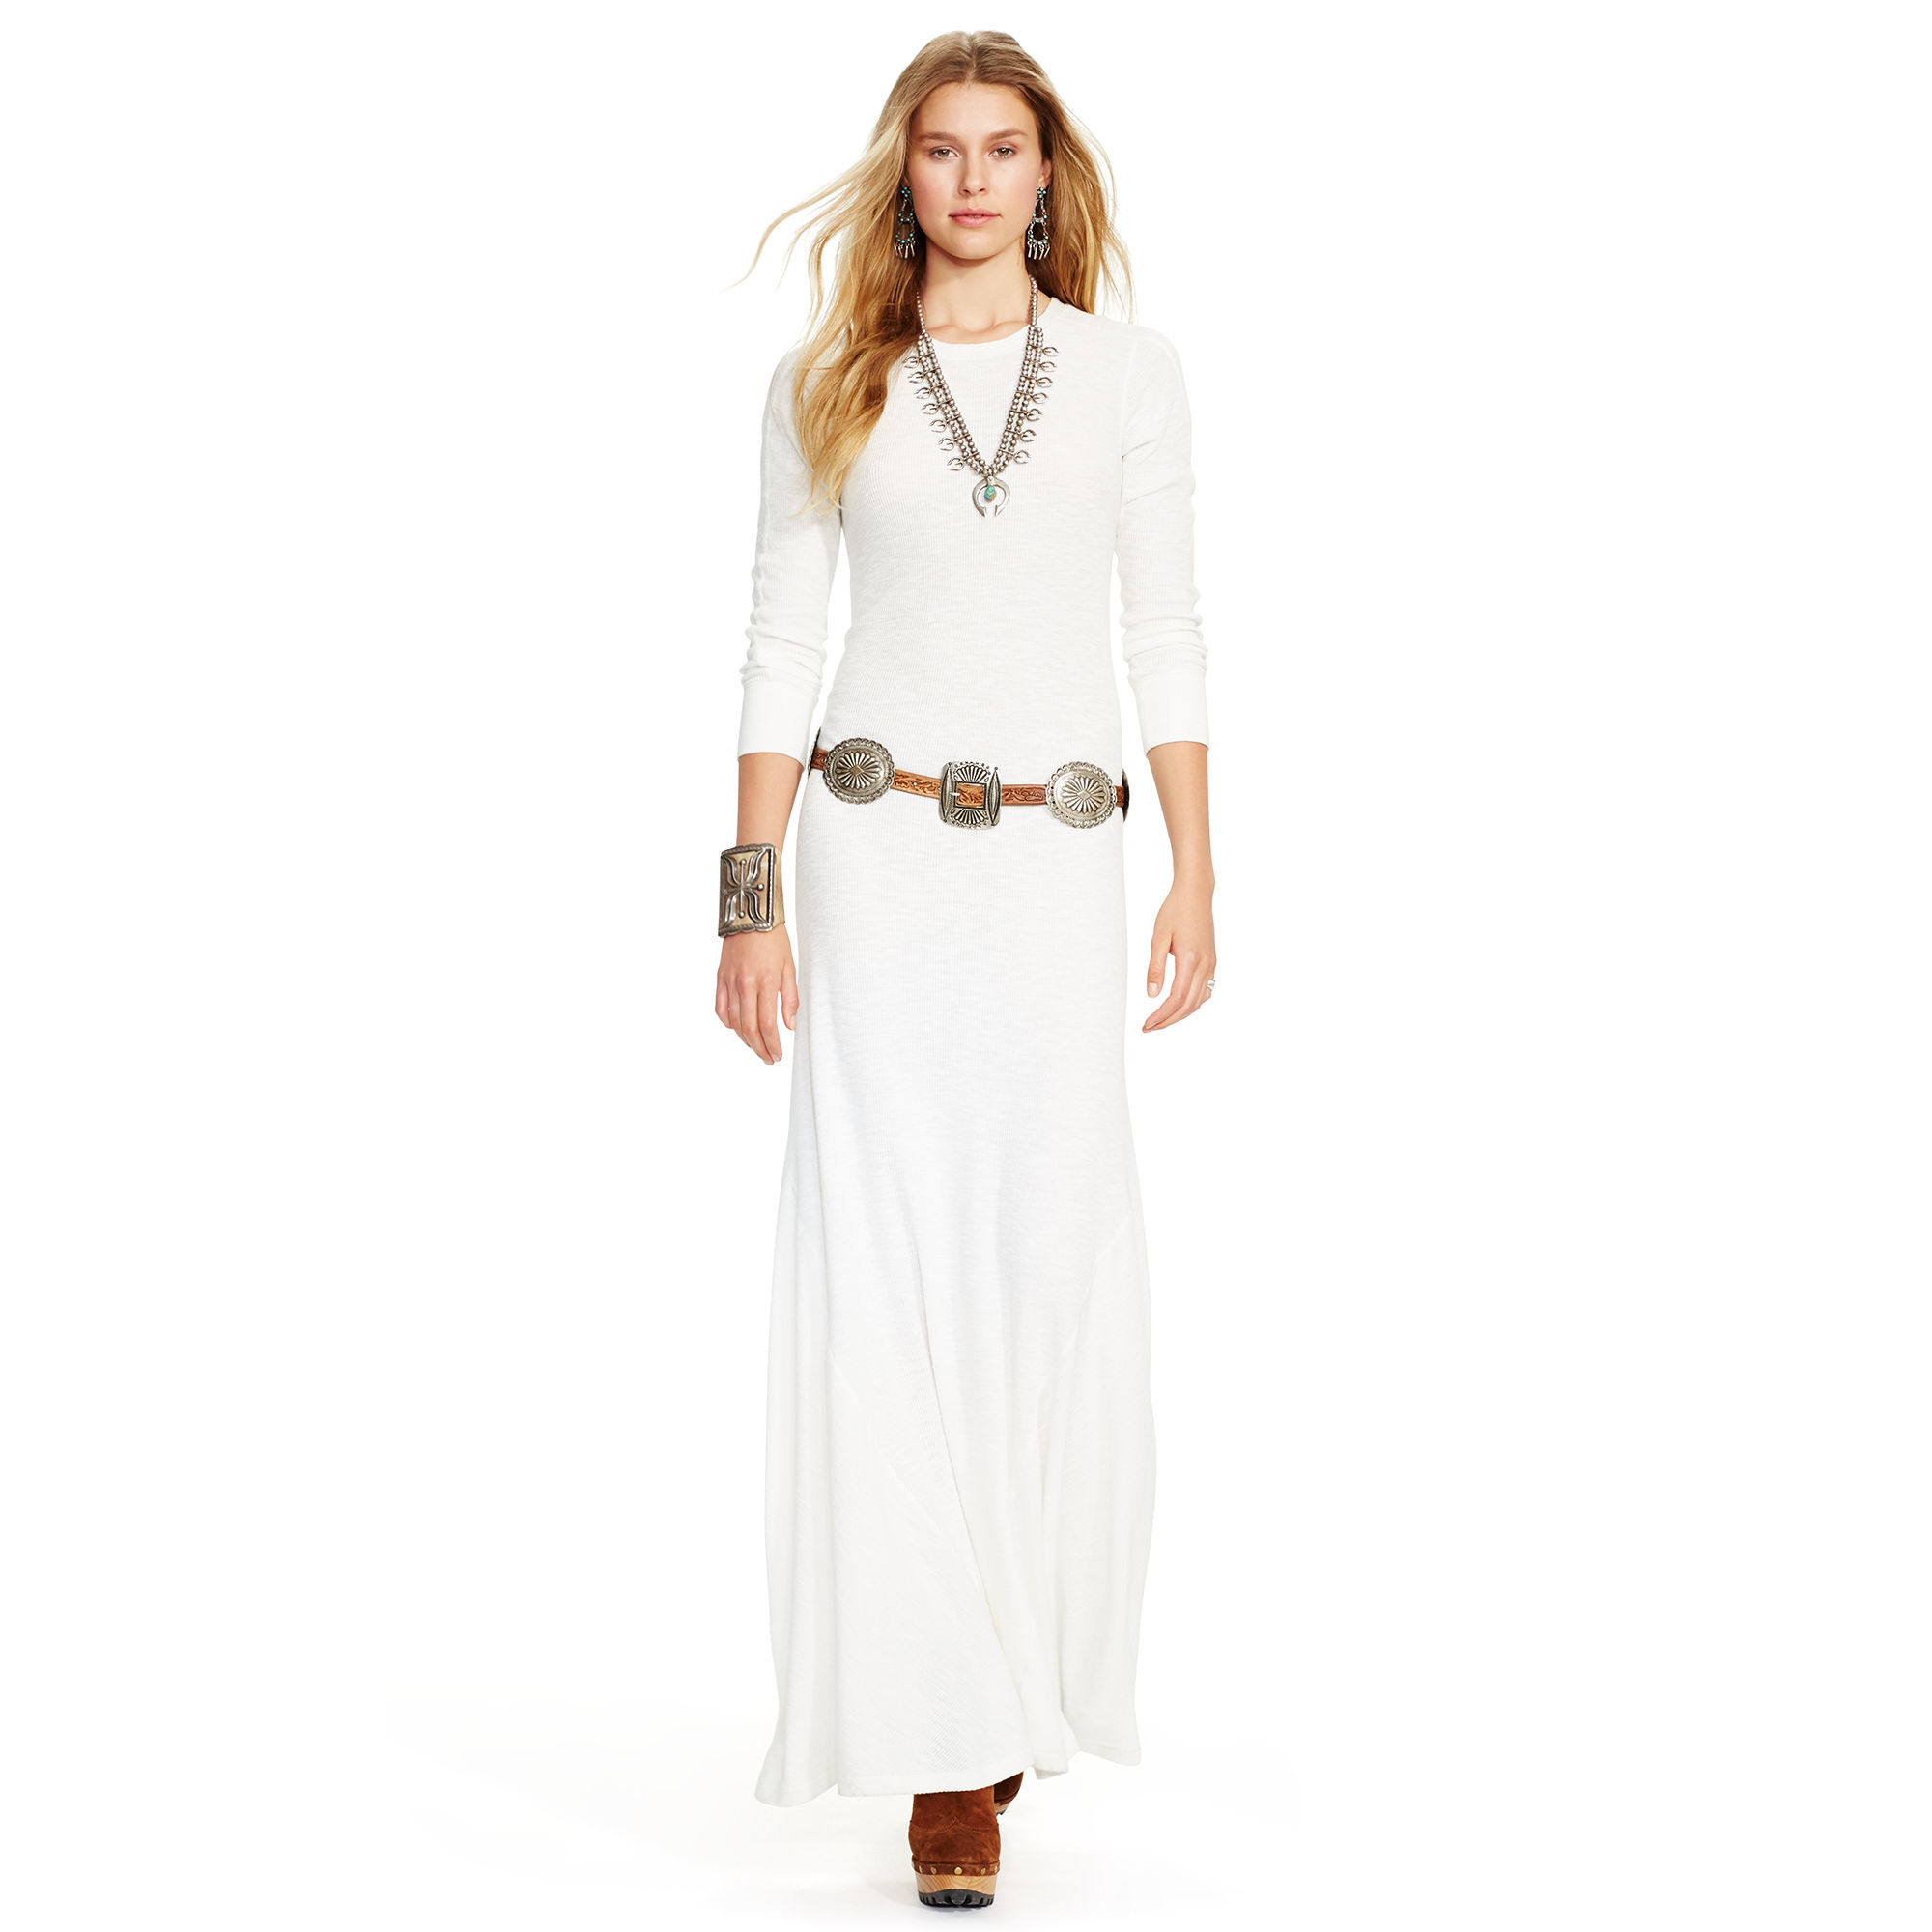 ce6f6bc2971 Polo Ralph Lauren Waffle-knit Cotton Maxidress in Natural - Lyst